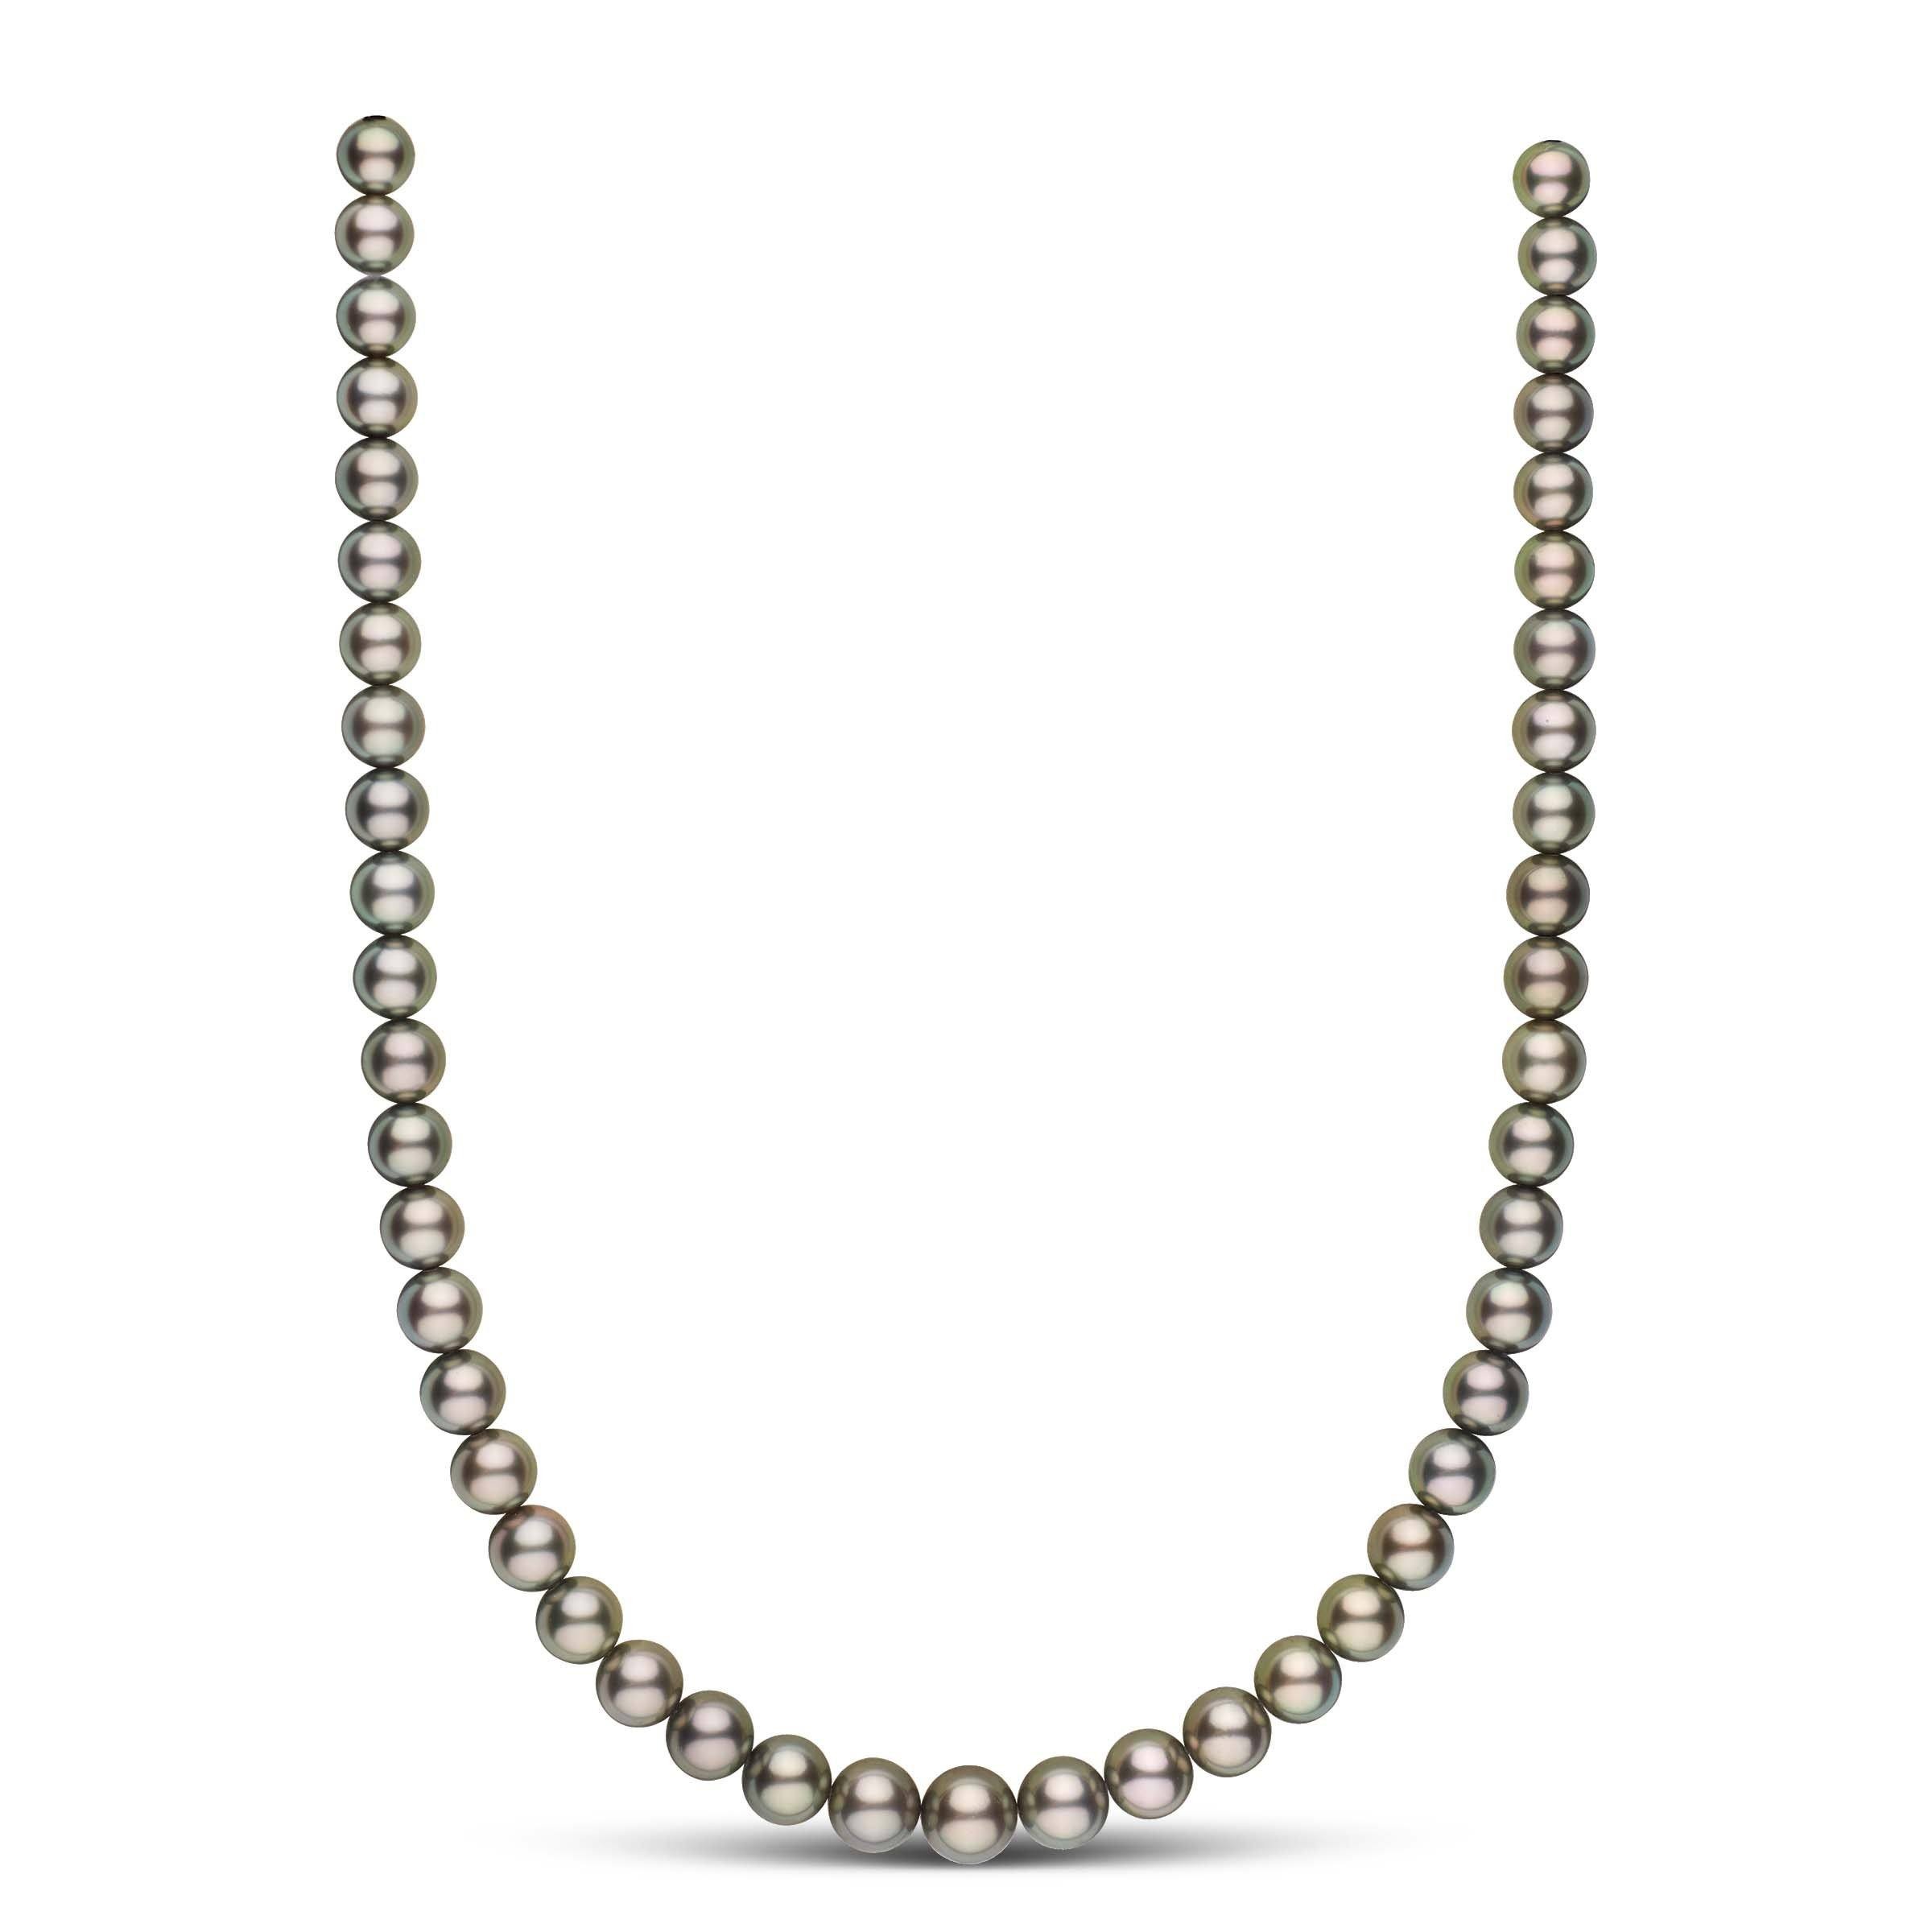 18-inch 8.0-10.2 mm AAA Round Tahitian Pearl Necklace